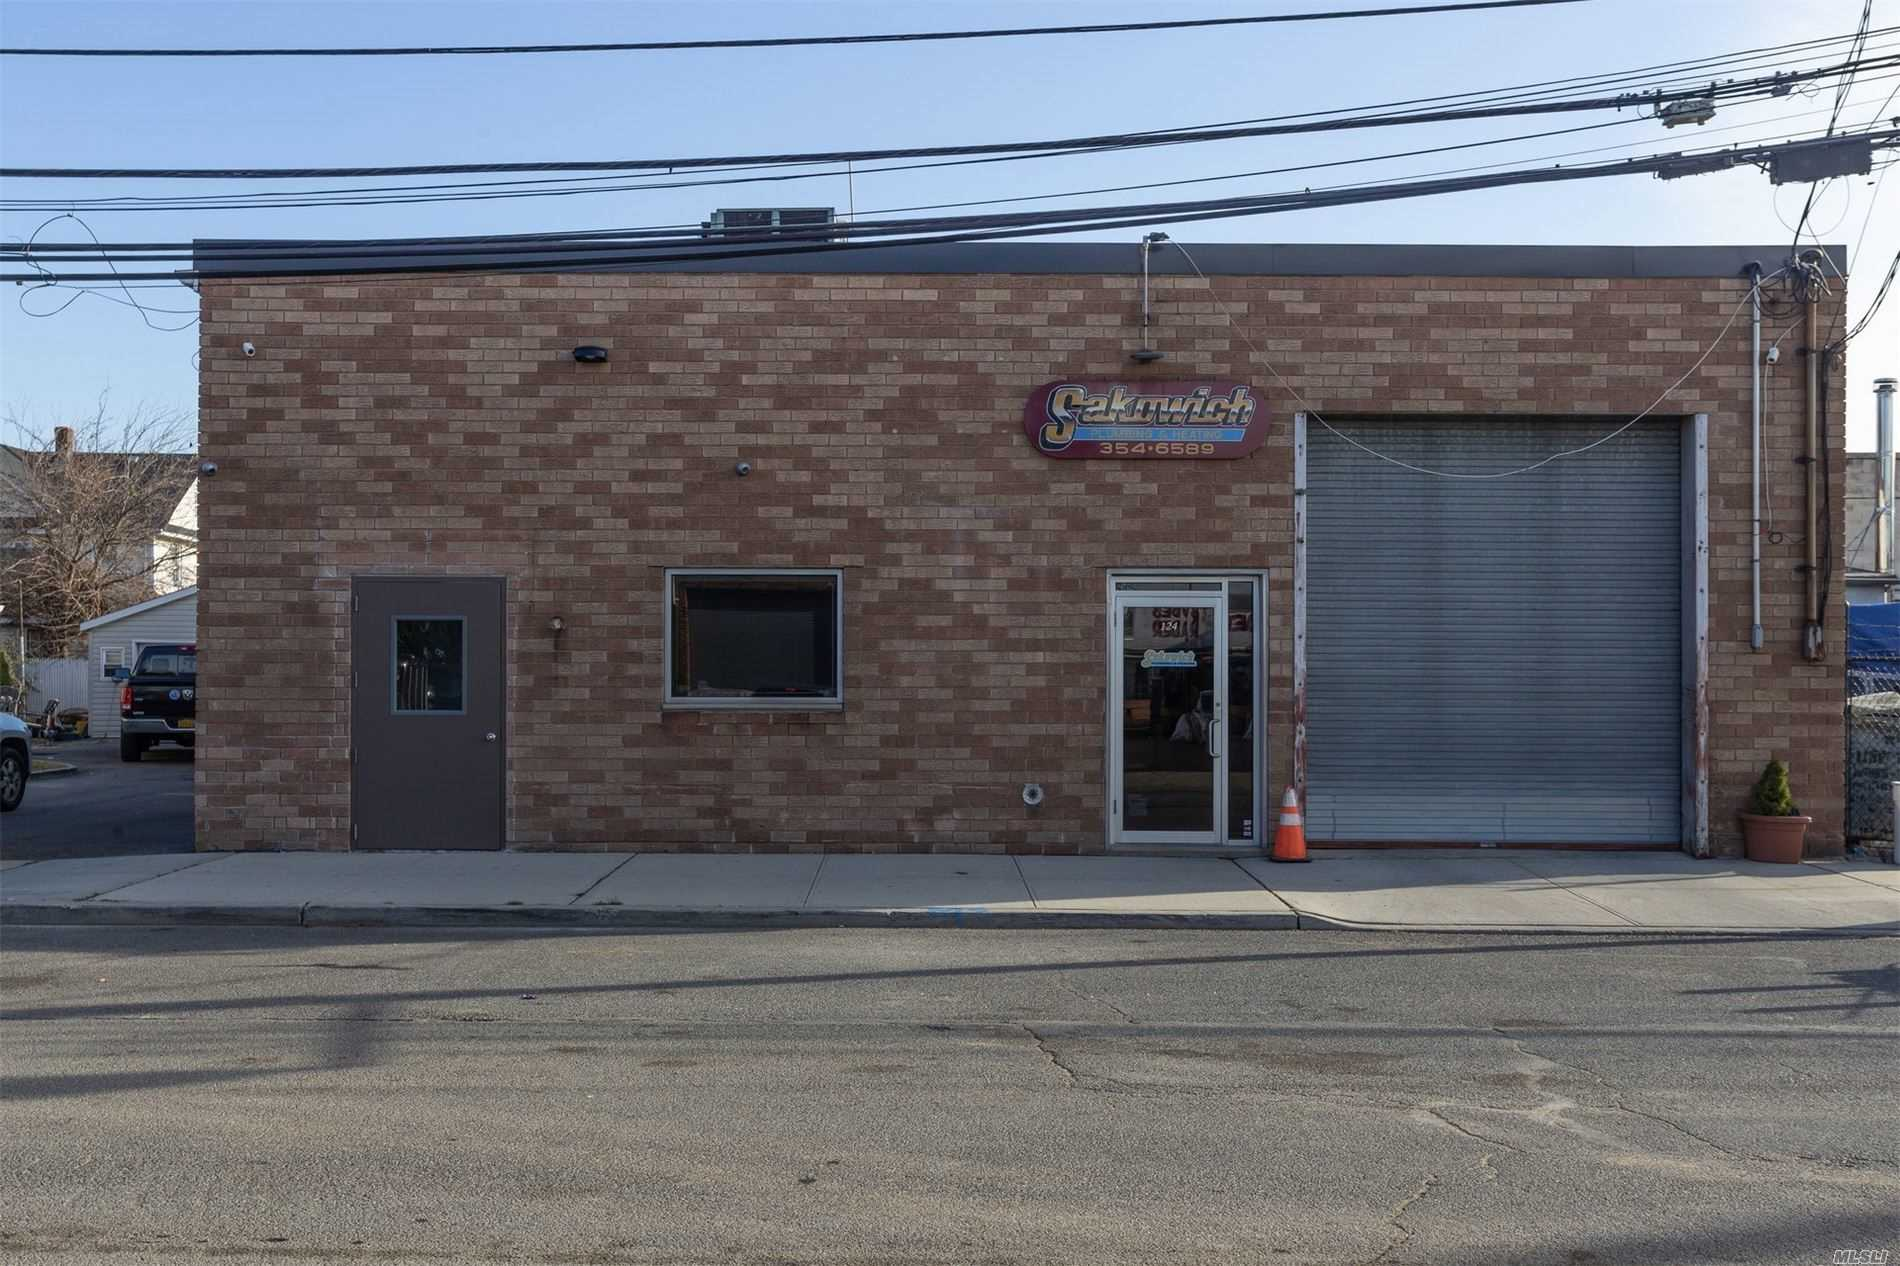 Totally Updated and Renovated Commerical Rental. This Rectangle Shaped Office Features A Large Open Space With A Reception Area, Conference Room, 2 Bathrooms, Hi-Hats, Drop Ceiling, New HVAC System And Double Freight Doors For Easy Delivery Access. Close To LIRR